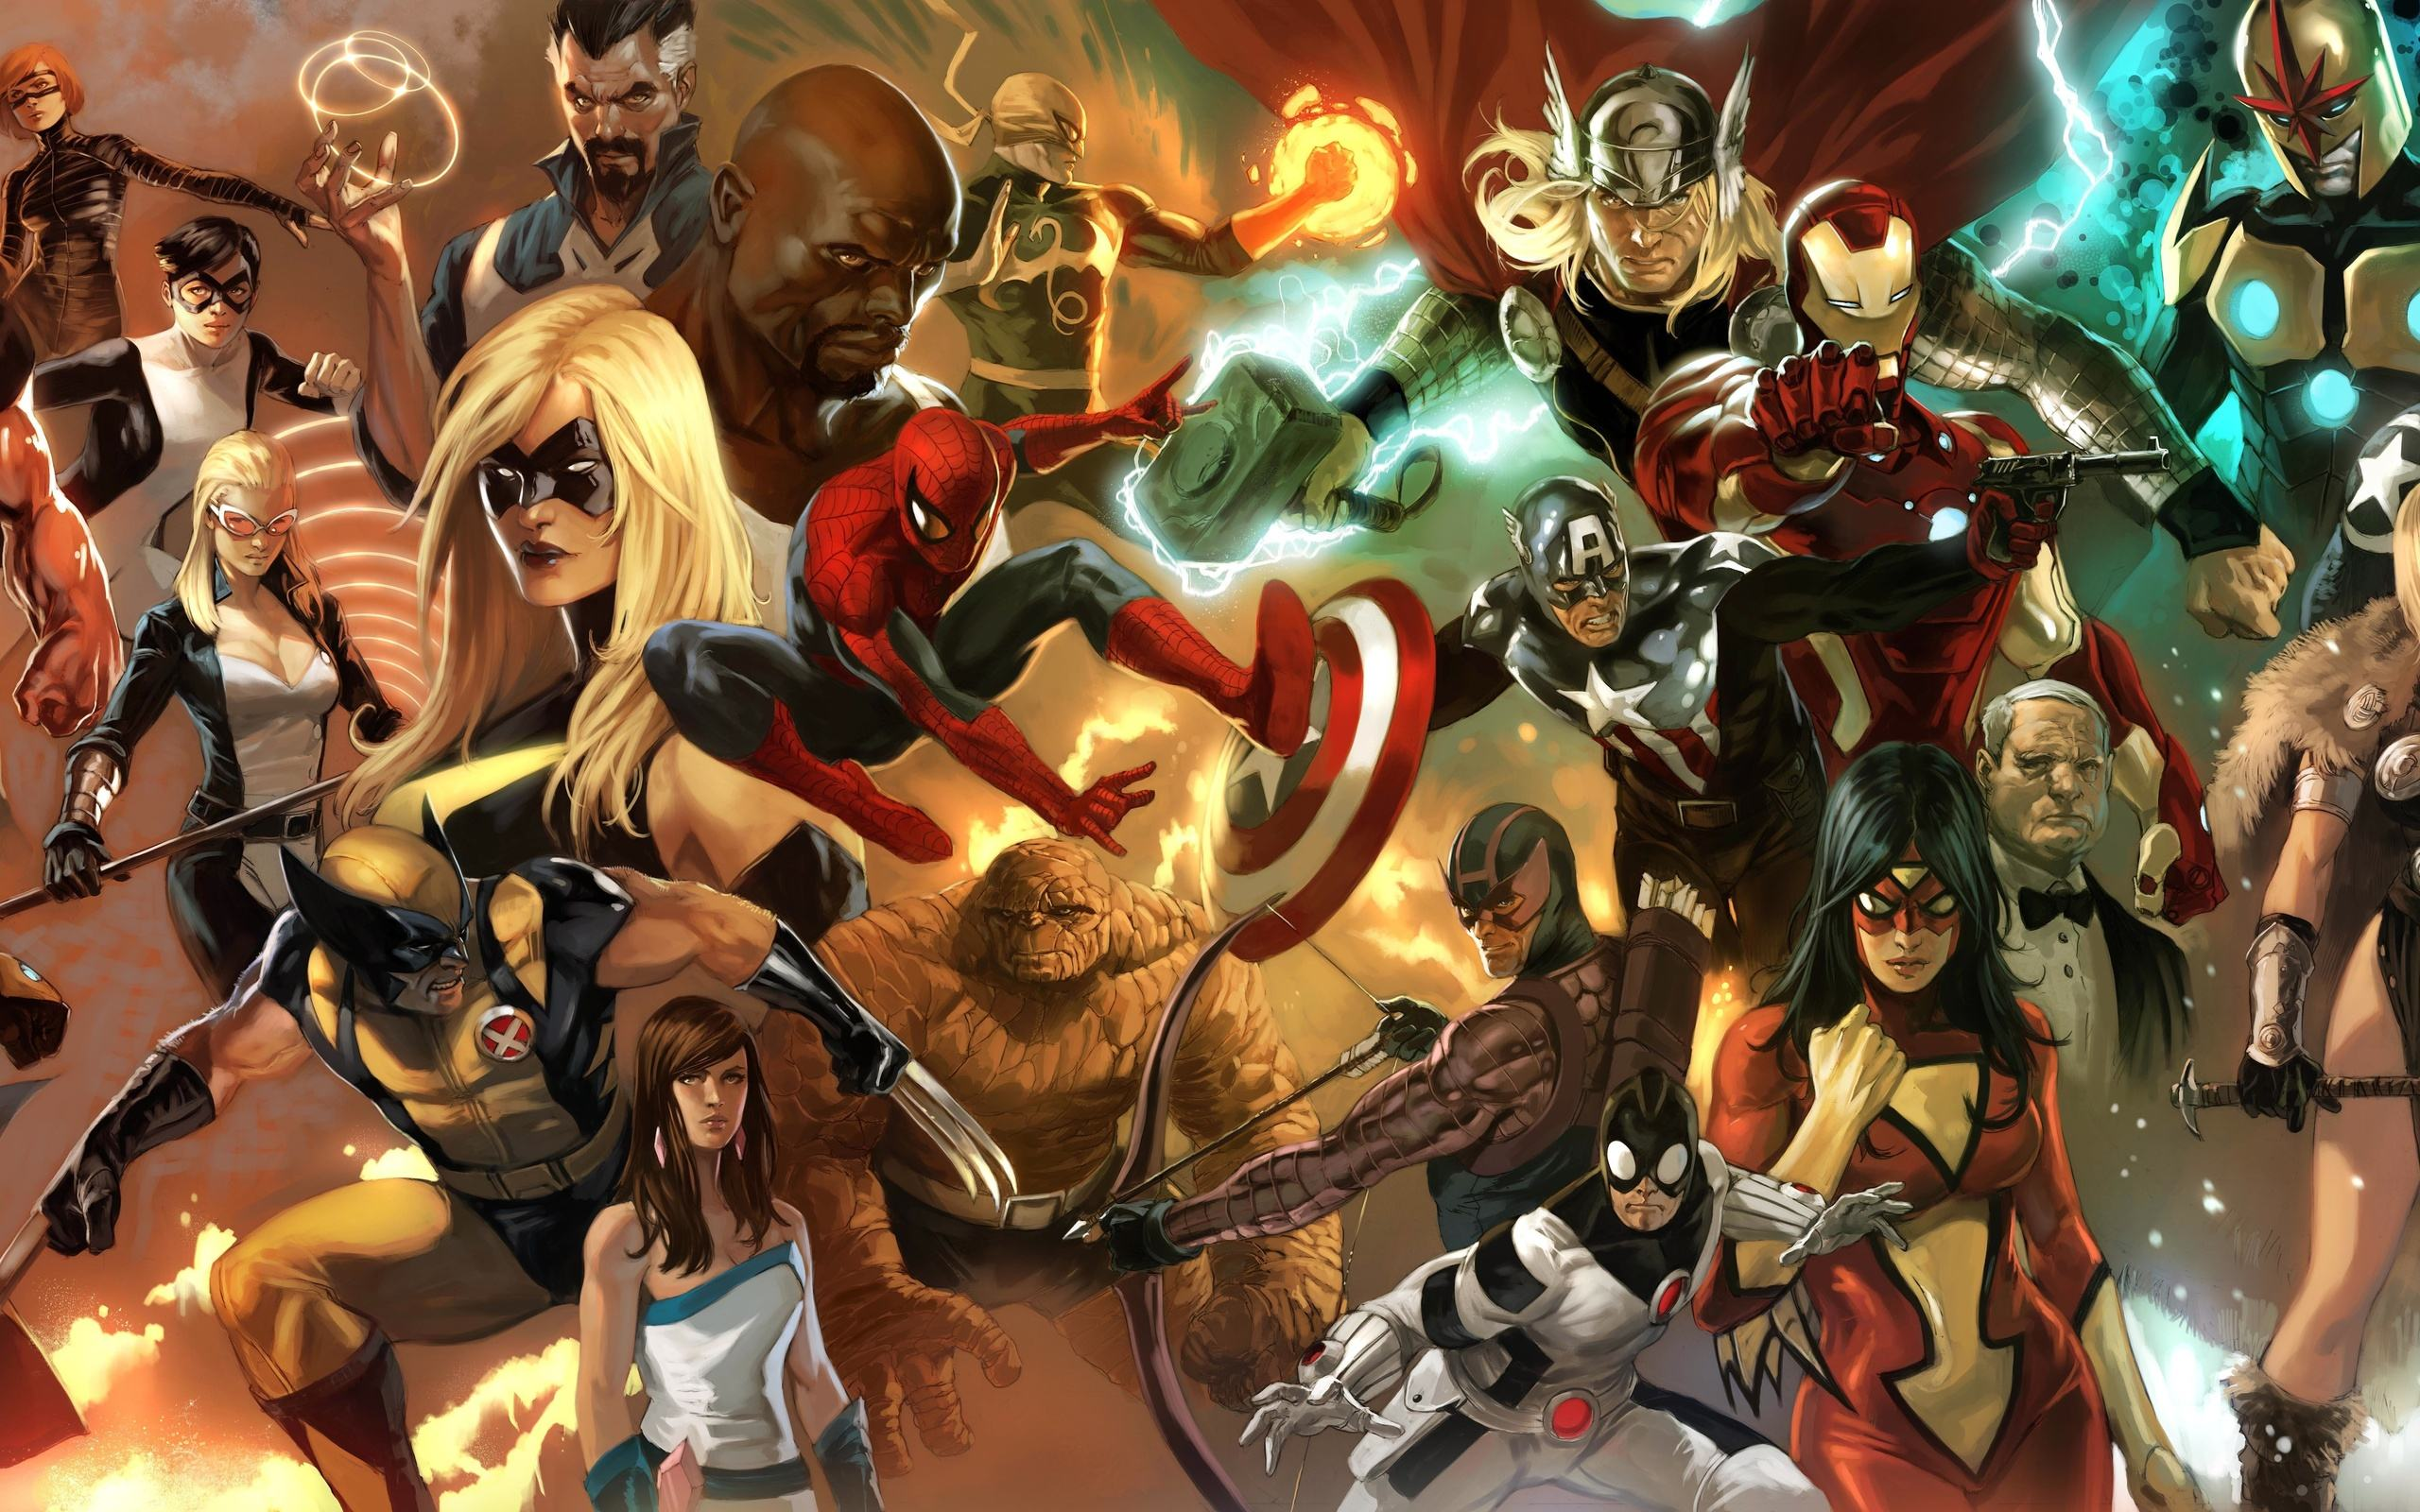 30 Cool Comic Book Wallpapers in High Quality, Elizabeth Bussel